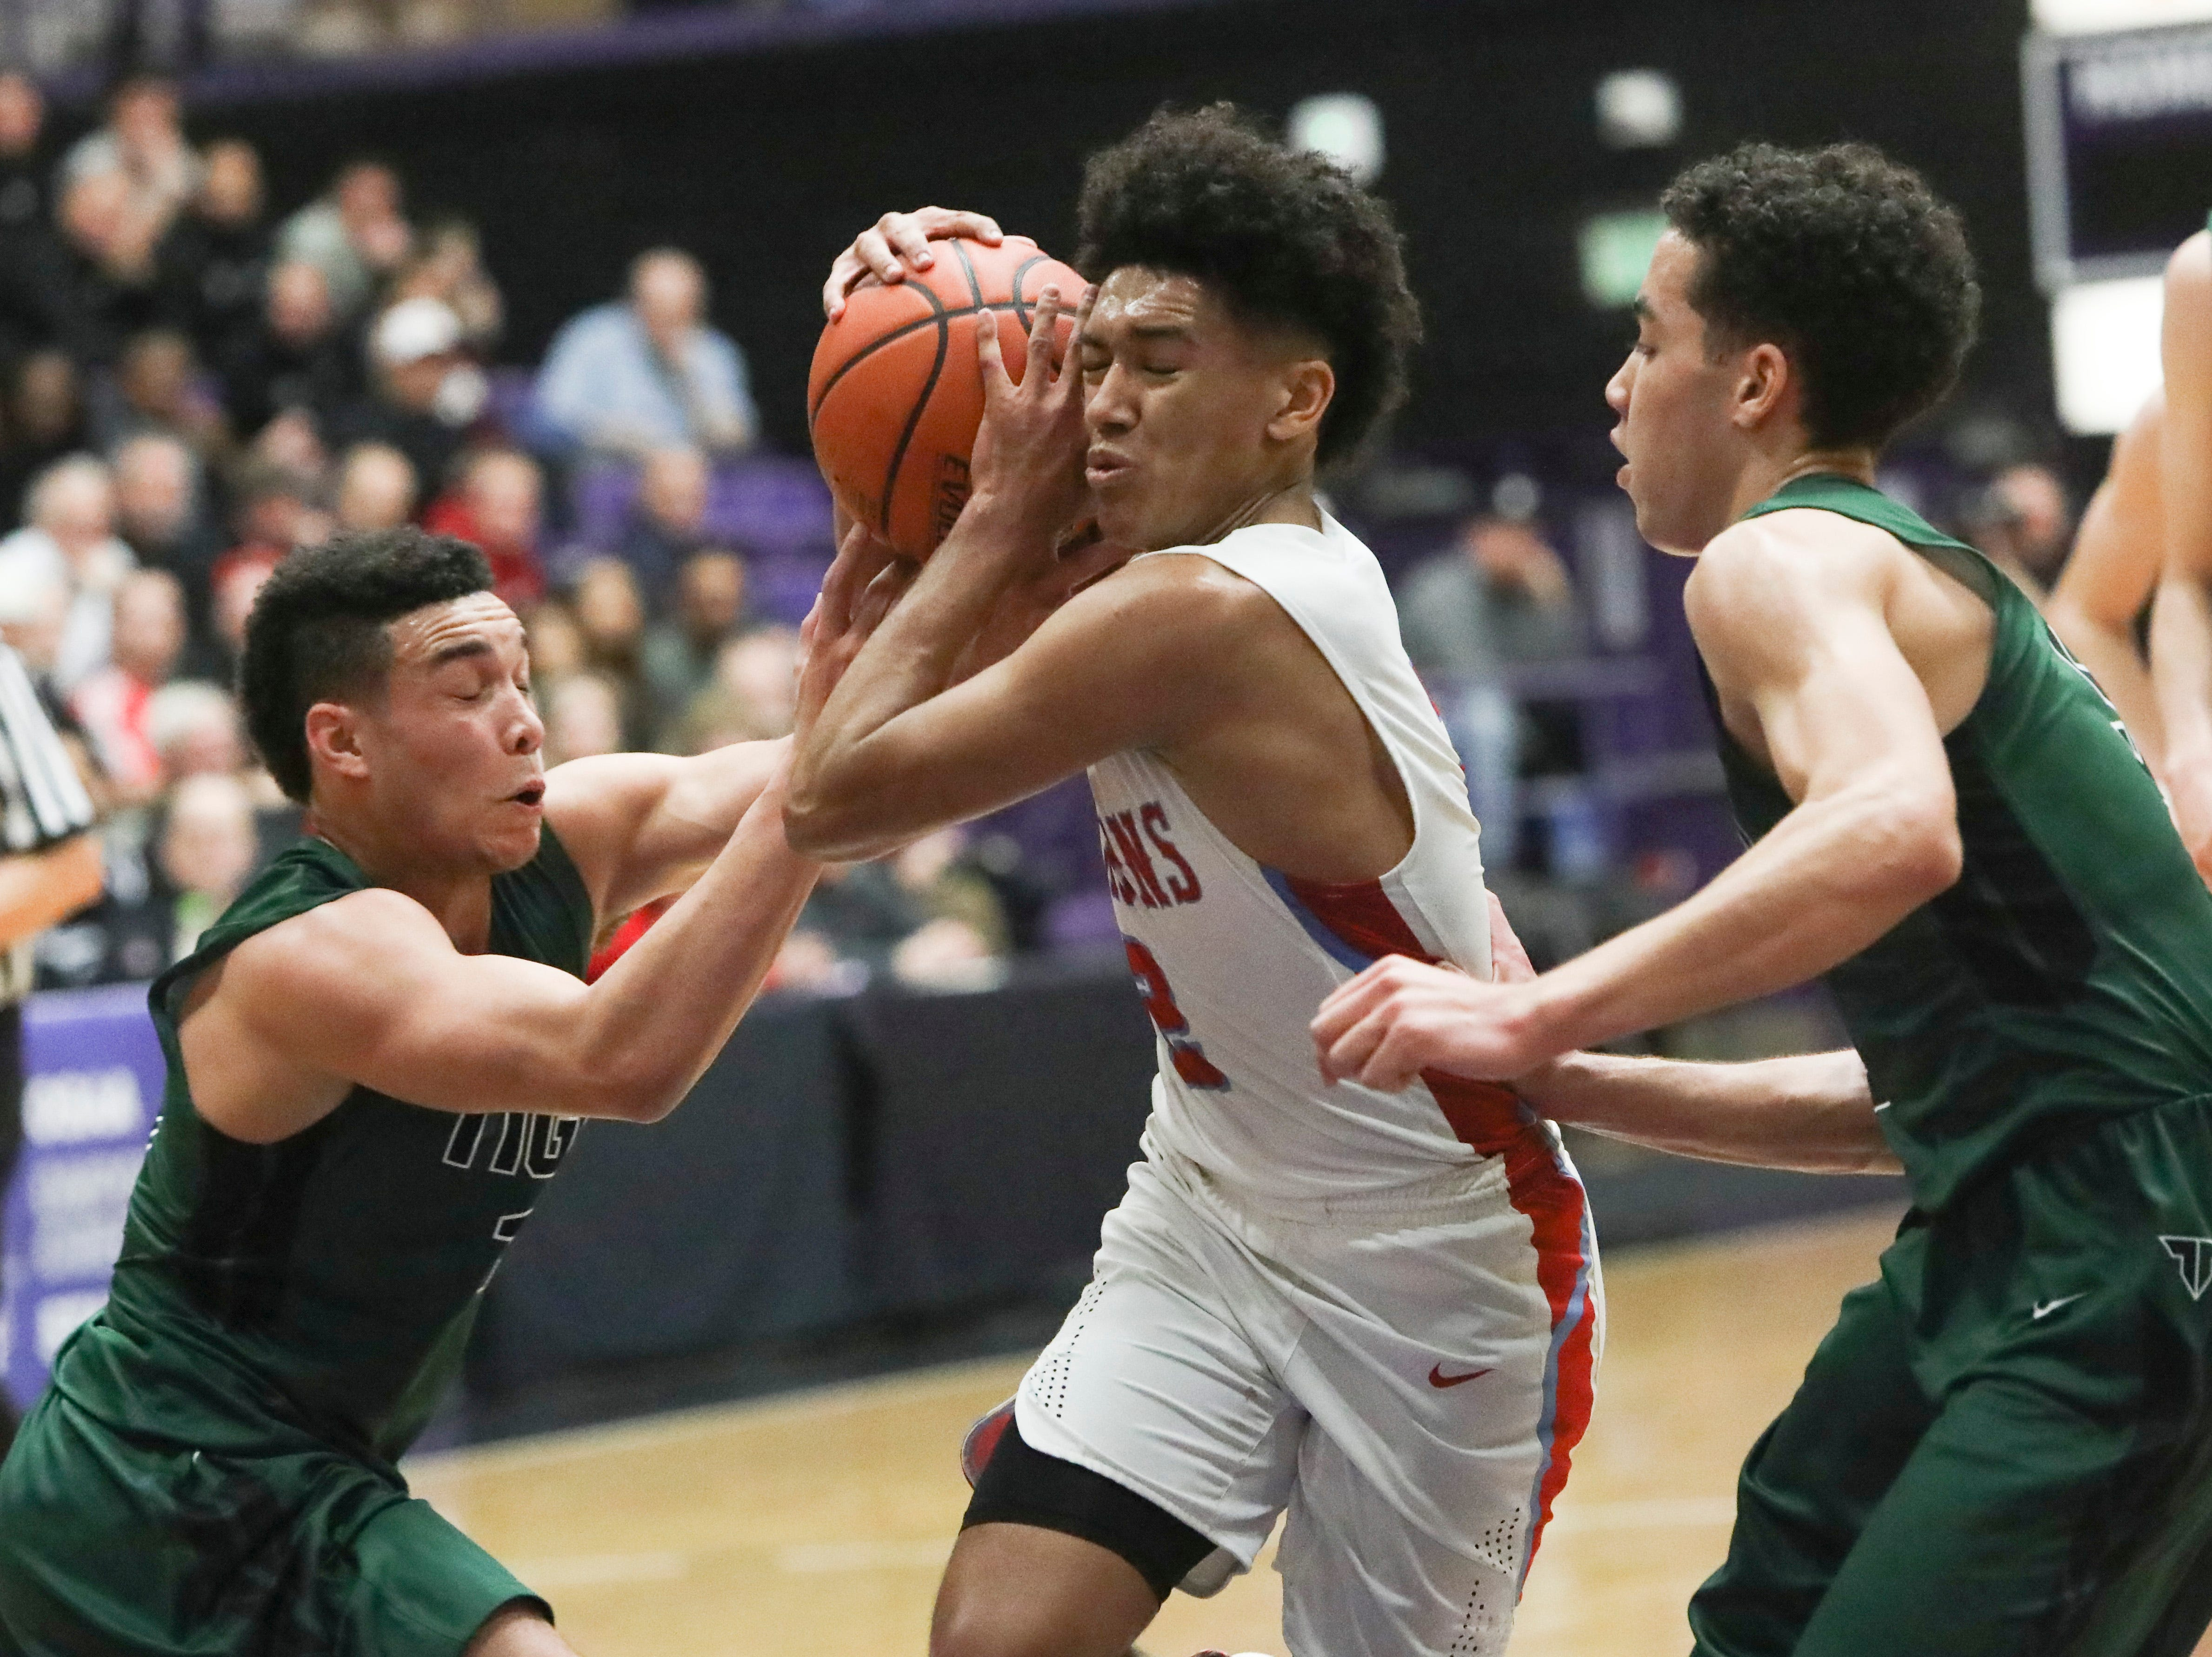 South Salem's Jaden Nielsen-Skinner (2) struggles to keep the ball away from Tigard players during the OSAA 6A boys basketball state tournament quarterfinal on Wednesday, March 6 at Chiles Center.